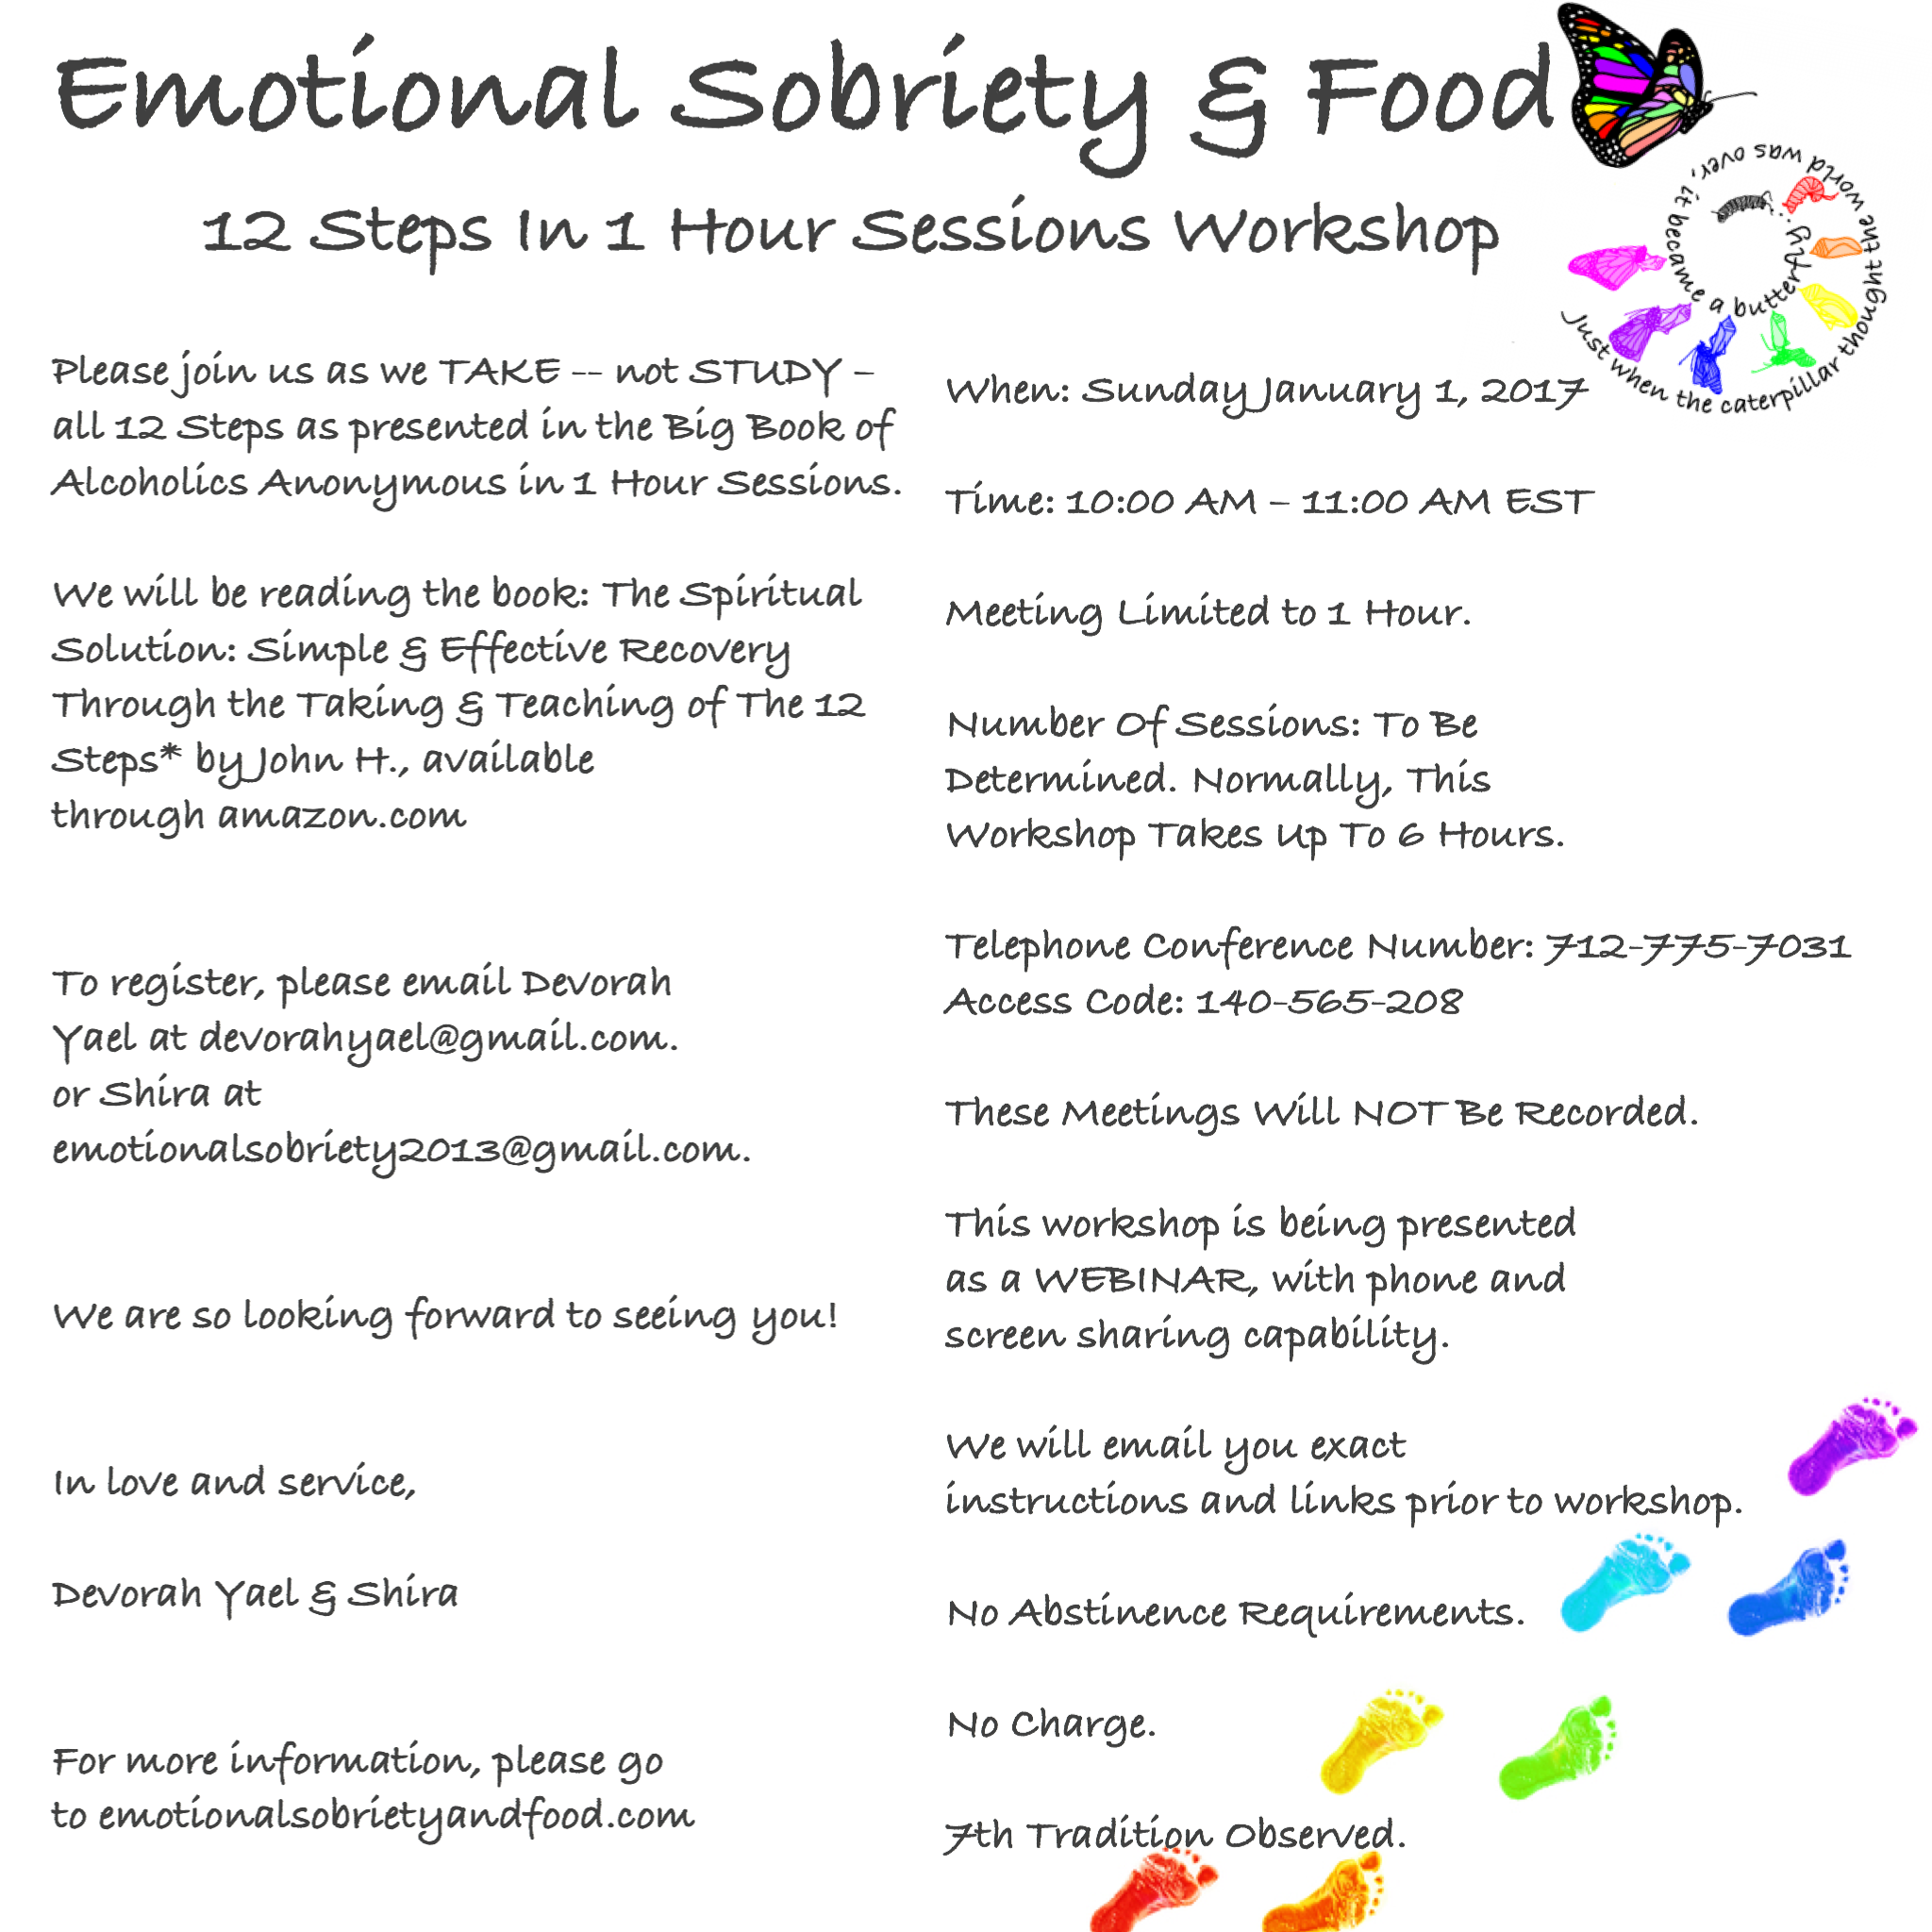 Emotional Sobriety and Food 12 Steps in 1 Hour Sessions Workshop ...